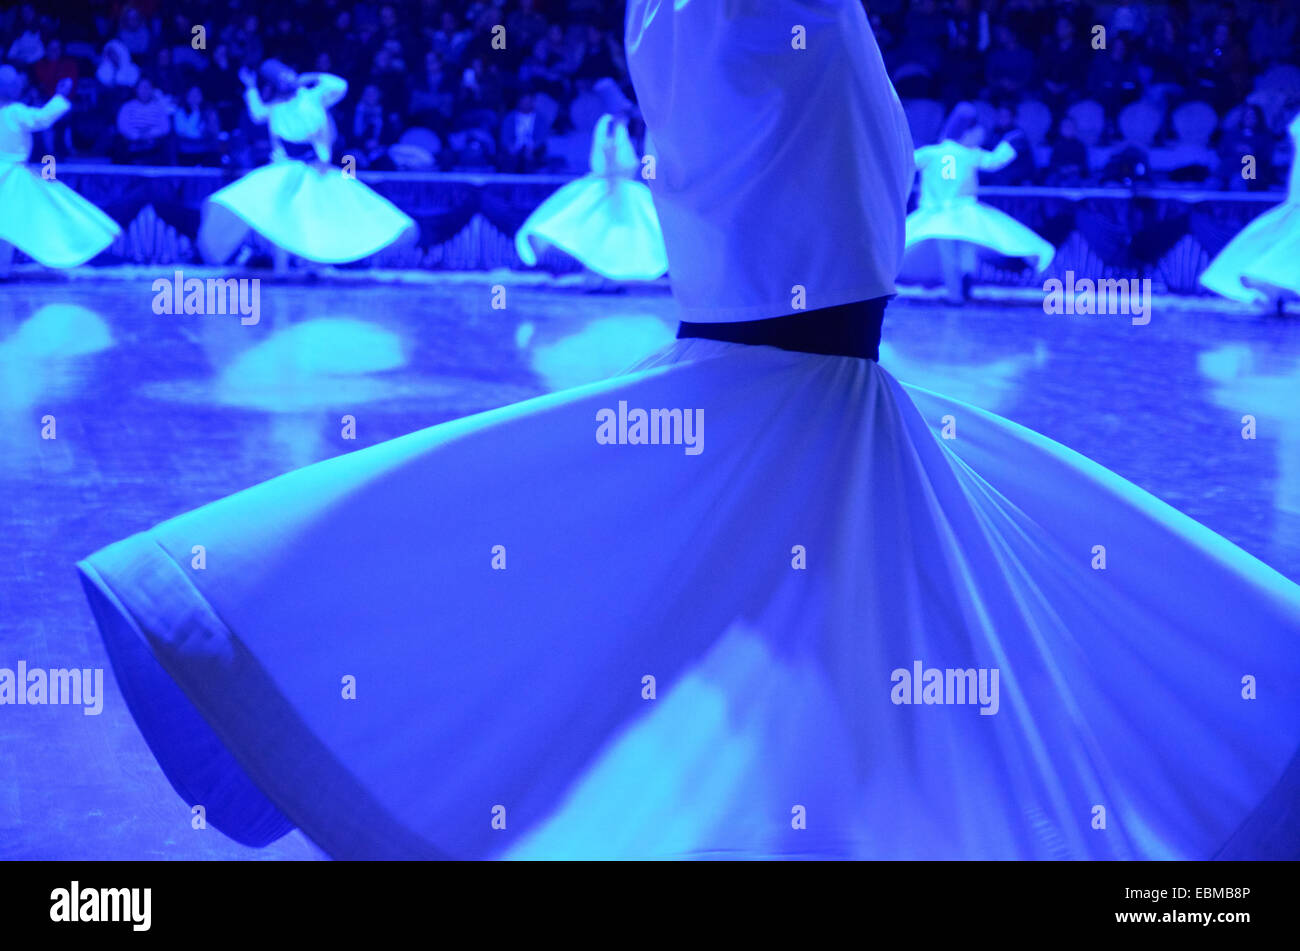 Whirling dervishes perform the Mevlevi Sema Ceremony at 740th anniversary of the death of Sufi teacher Mevlana Jalaladdin - Stock Image